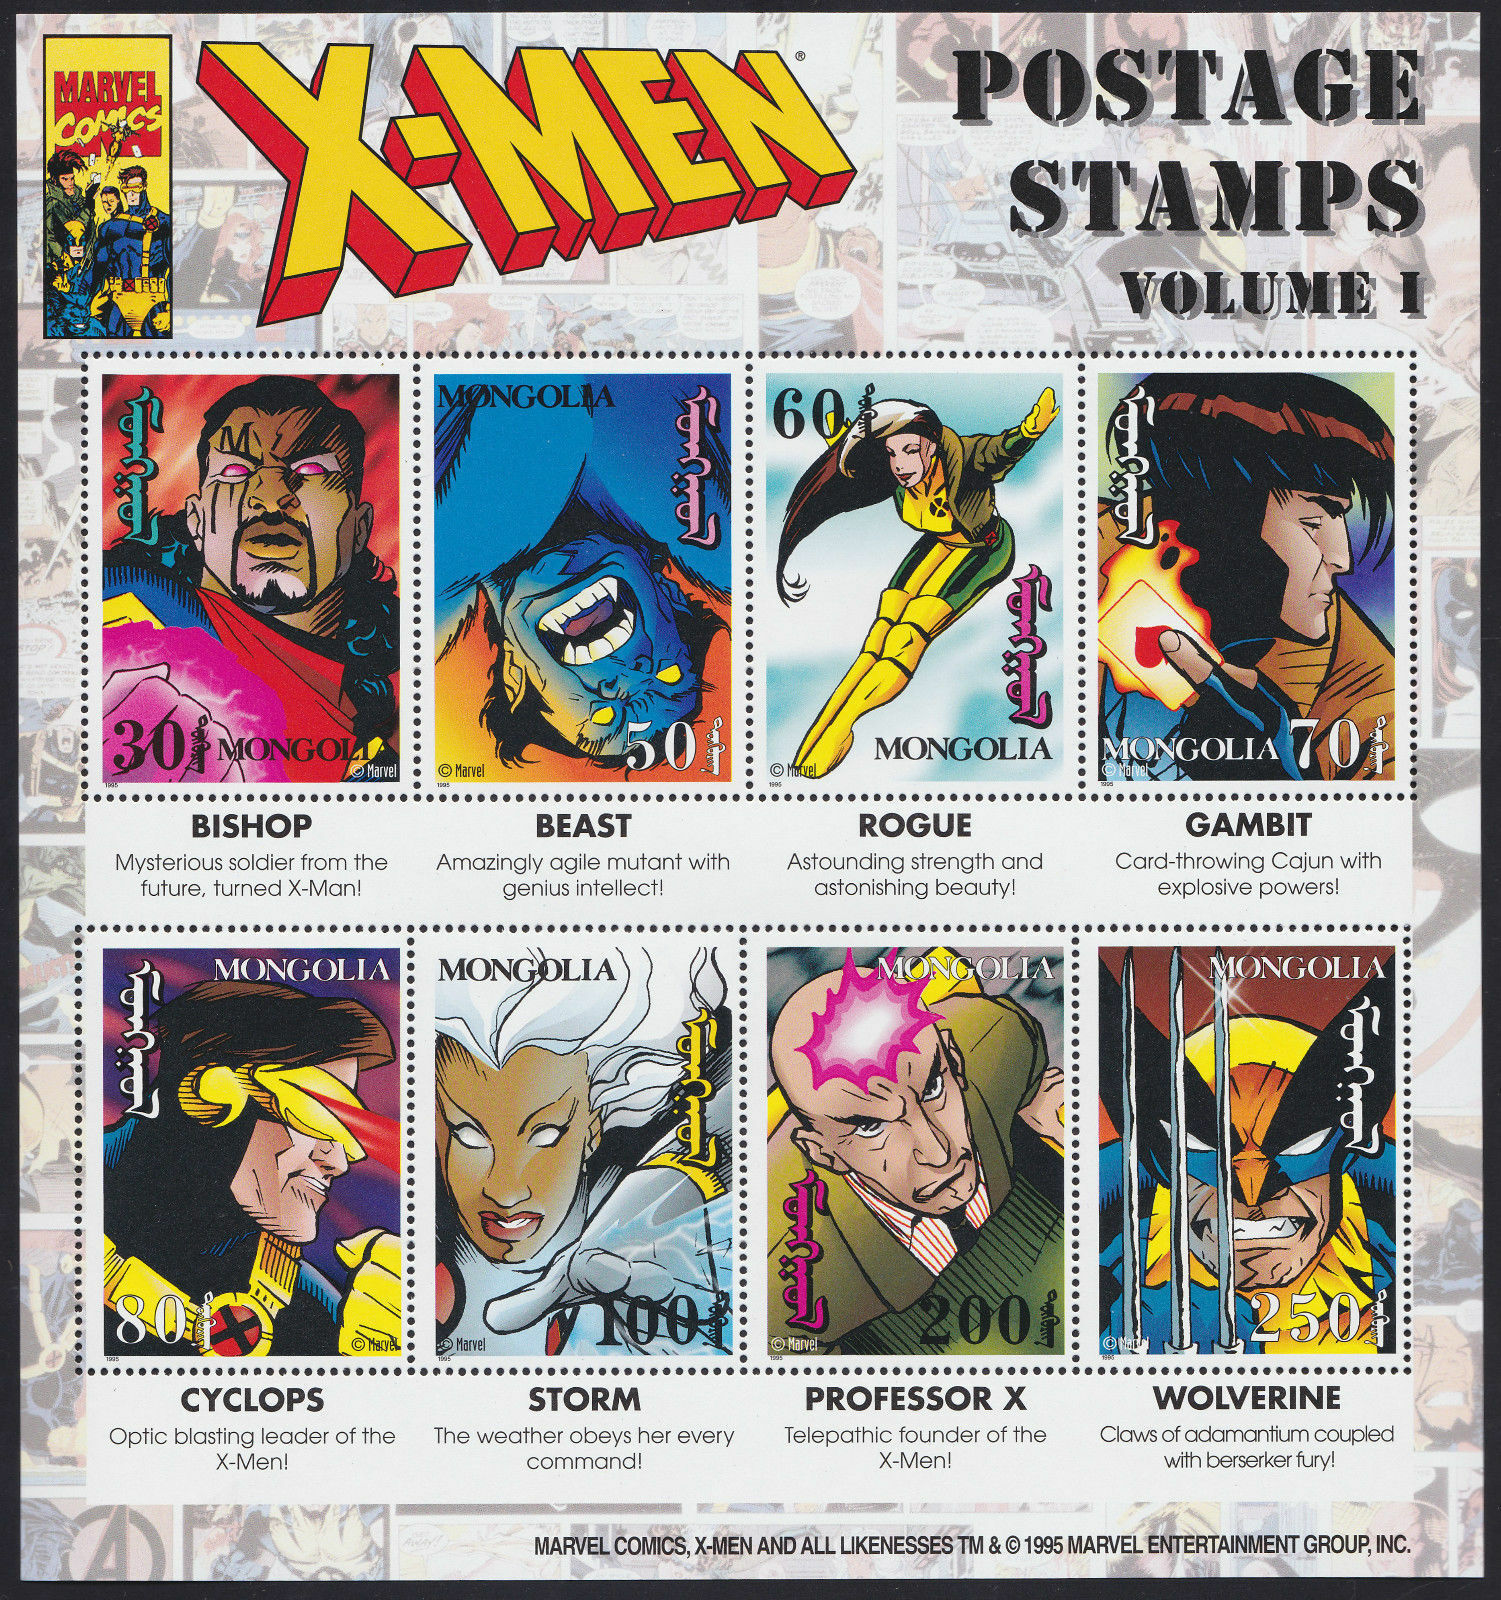 Marvel Comics X-Men Postage Stamp Collectors Sheet of 8 - Mongolia